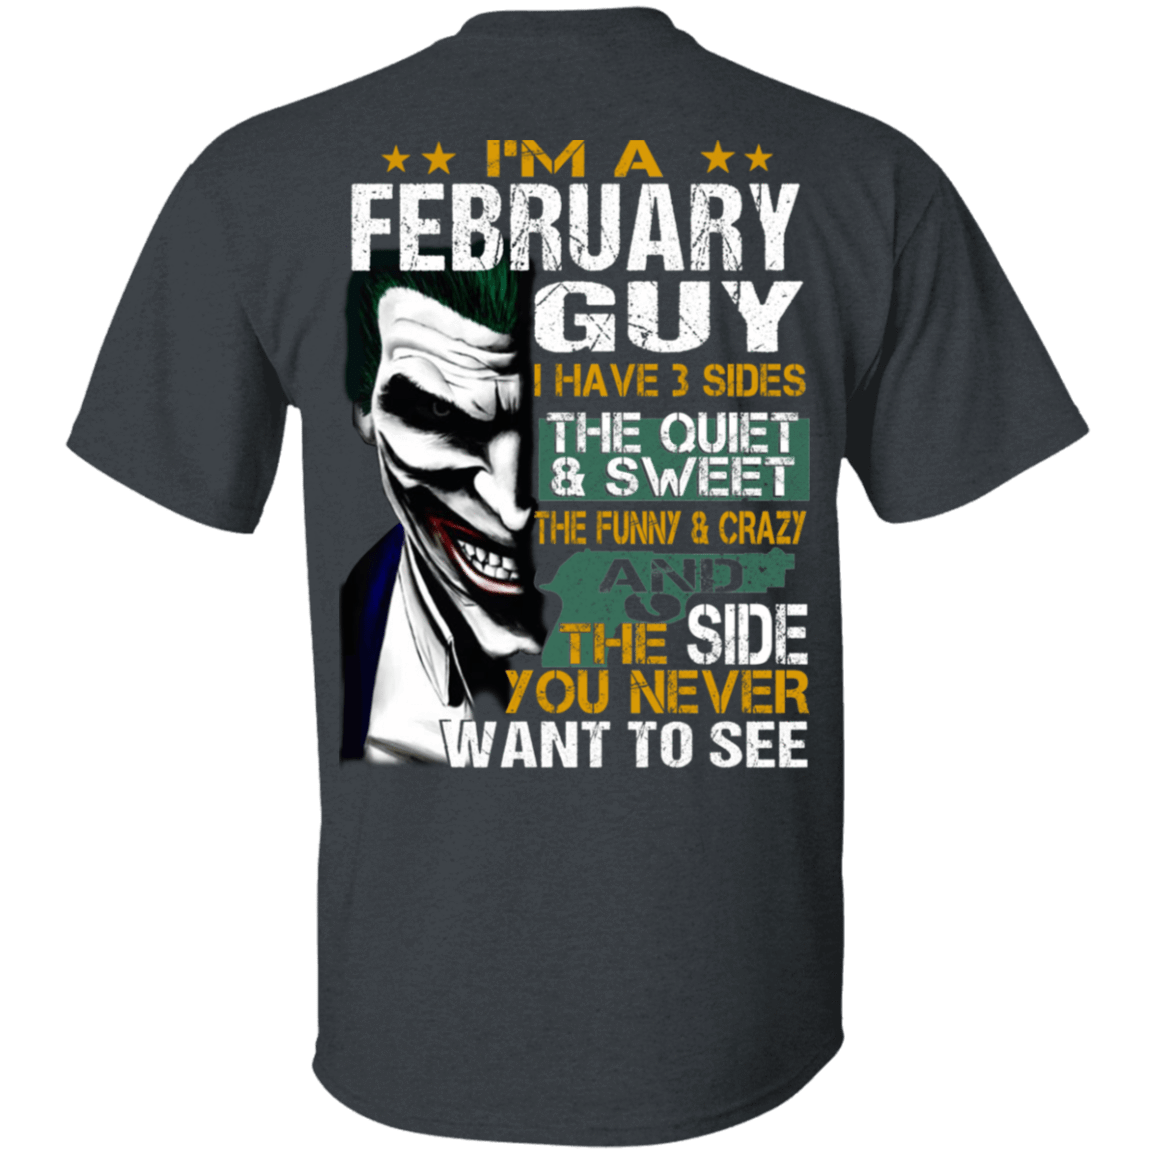 Joker February Guy Have 3 Sides The Quiet And Sweet T-Shirts, Hoodies 1049-9957-81692475-48192 - Tee Ript